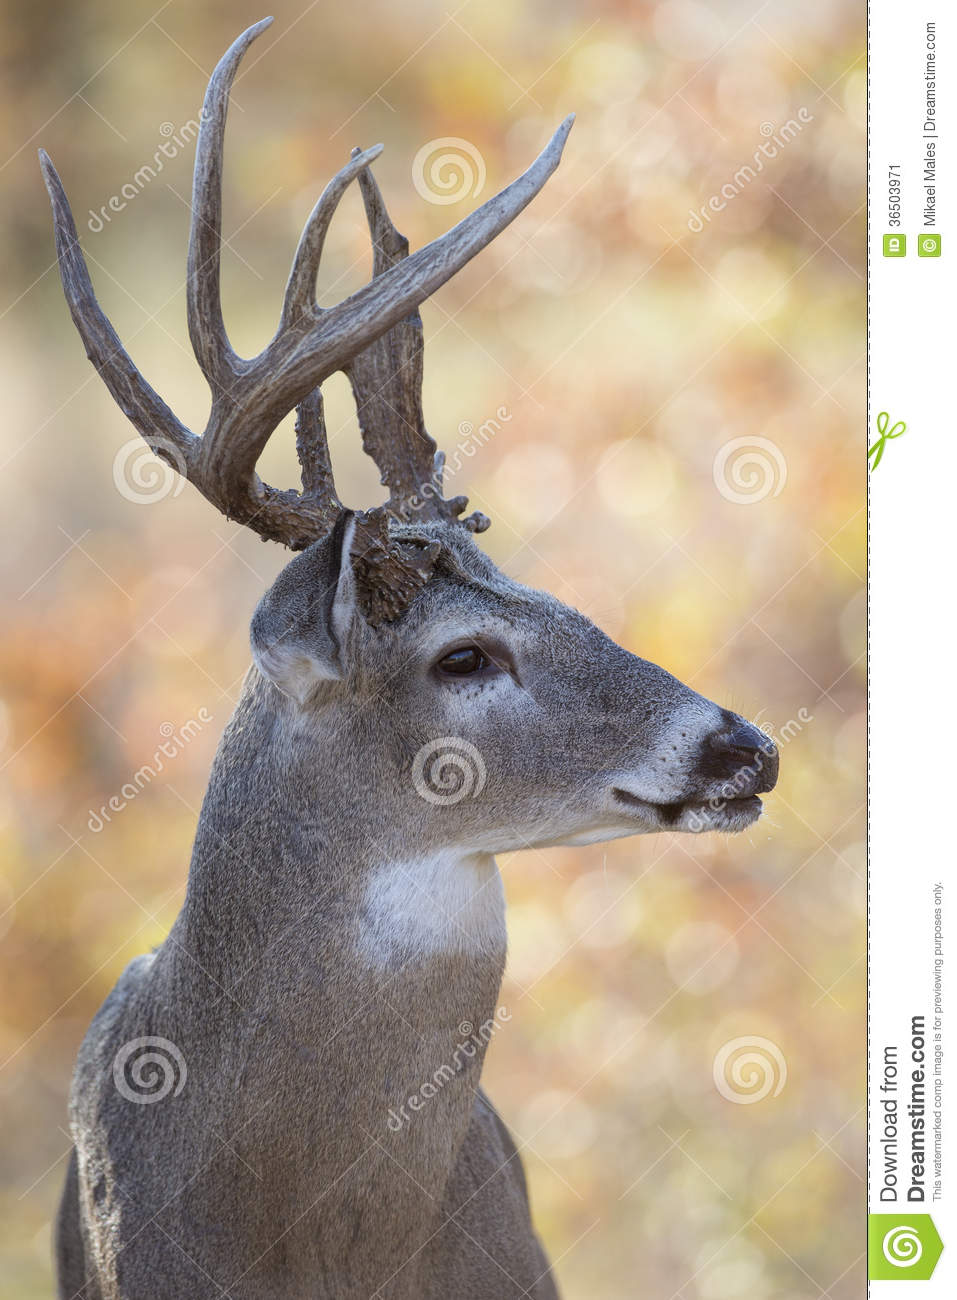 Deer Side View : Whitetail, Antlers, Photos, Royalty-Free, Stock, Dreamstime